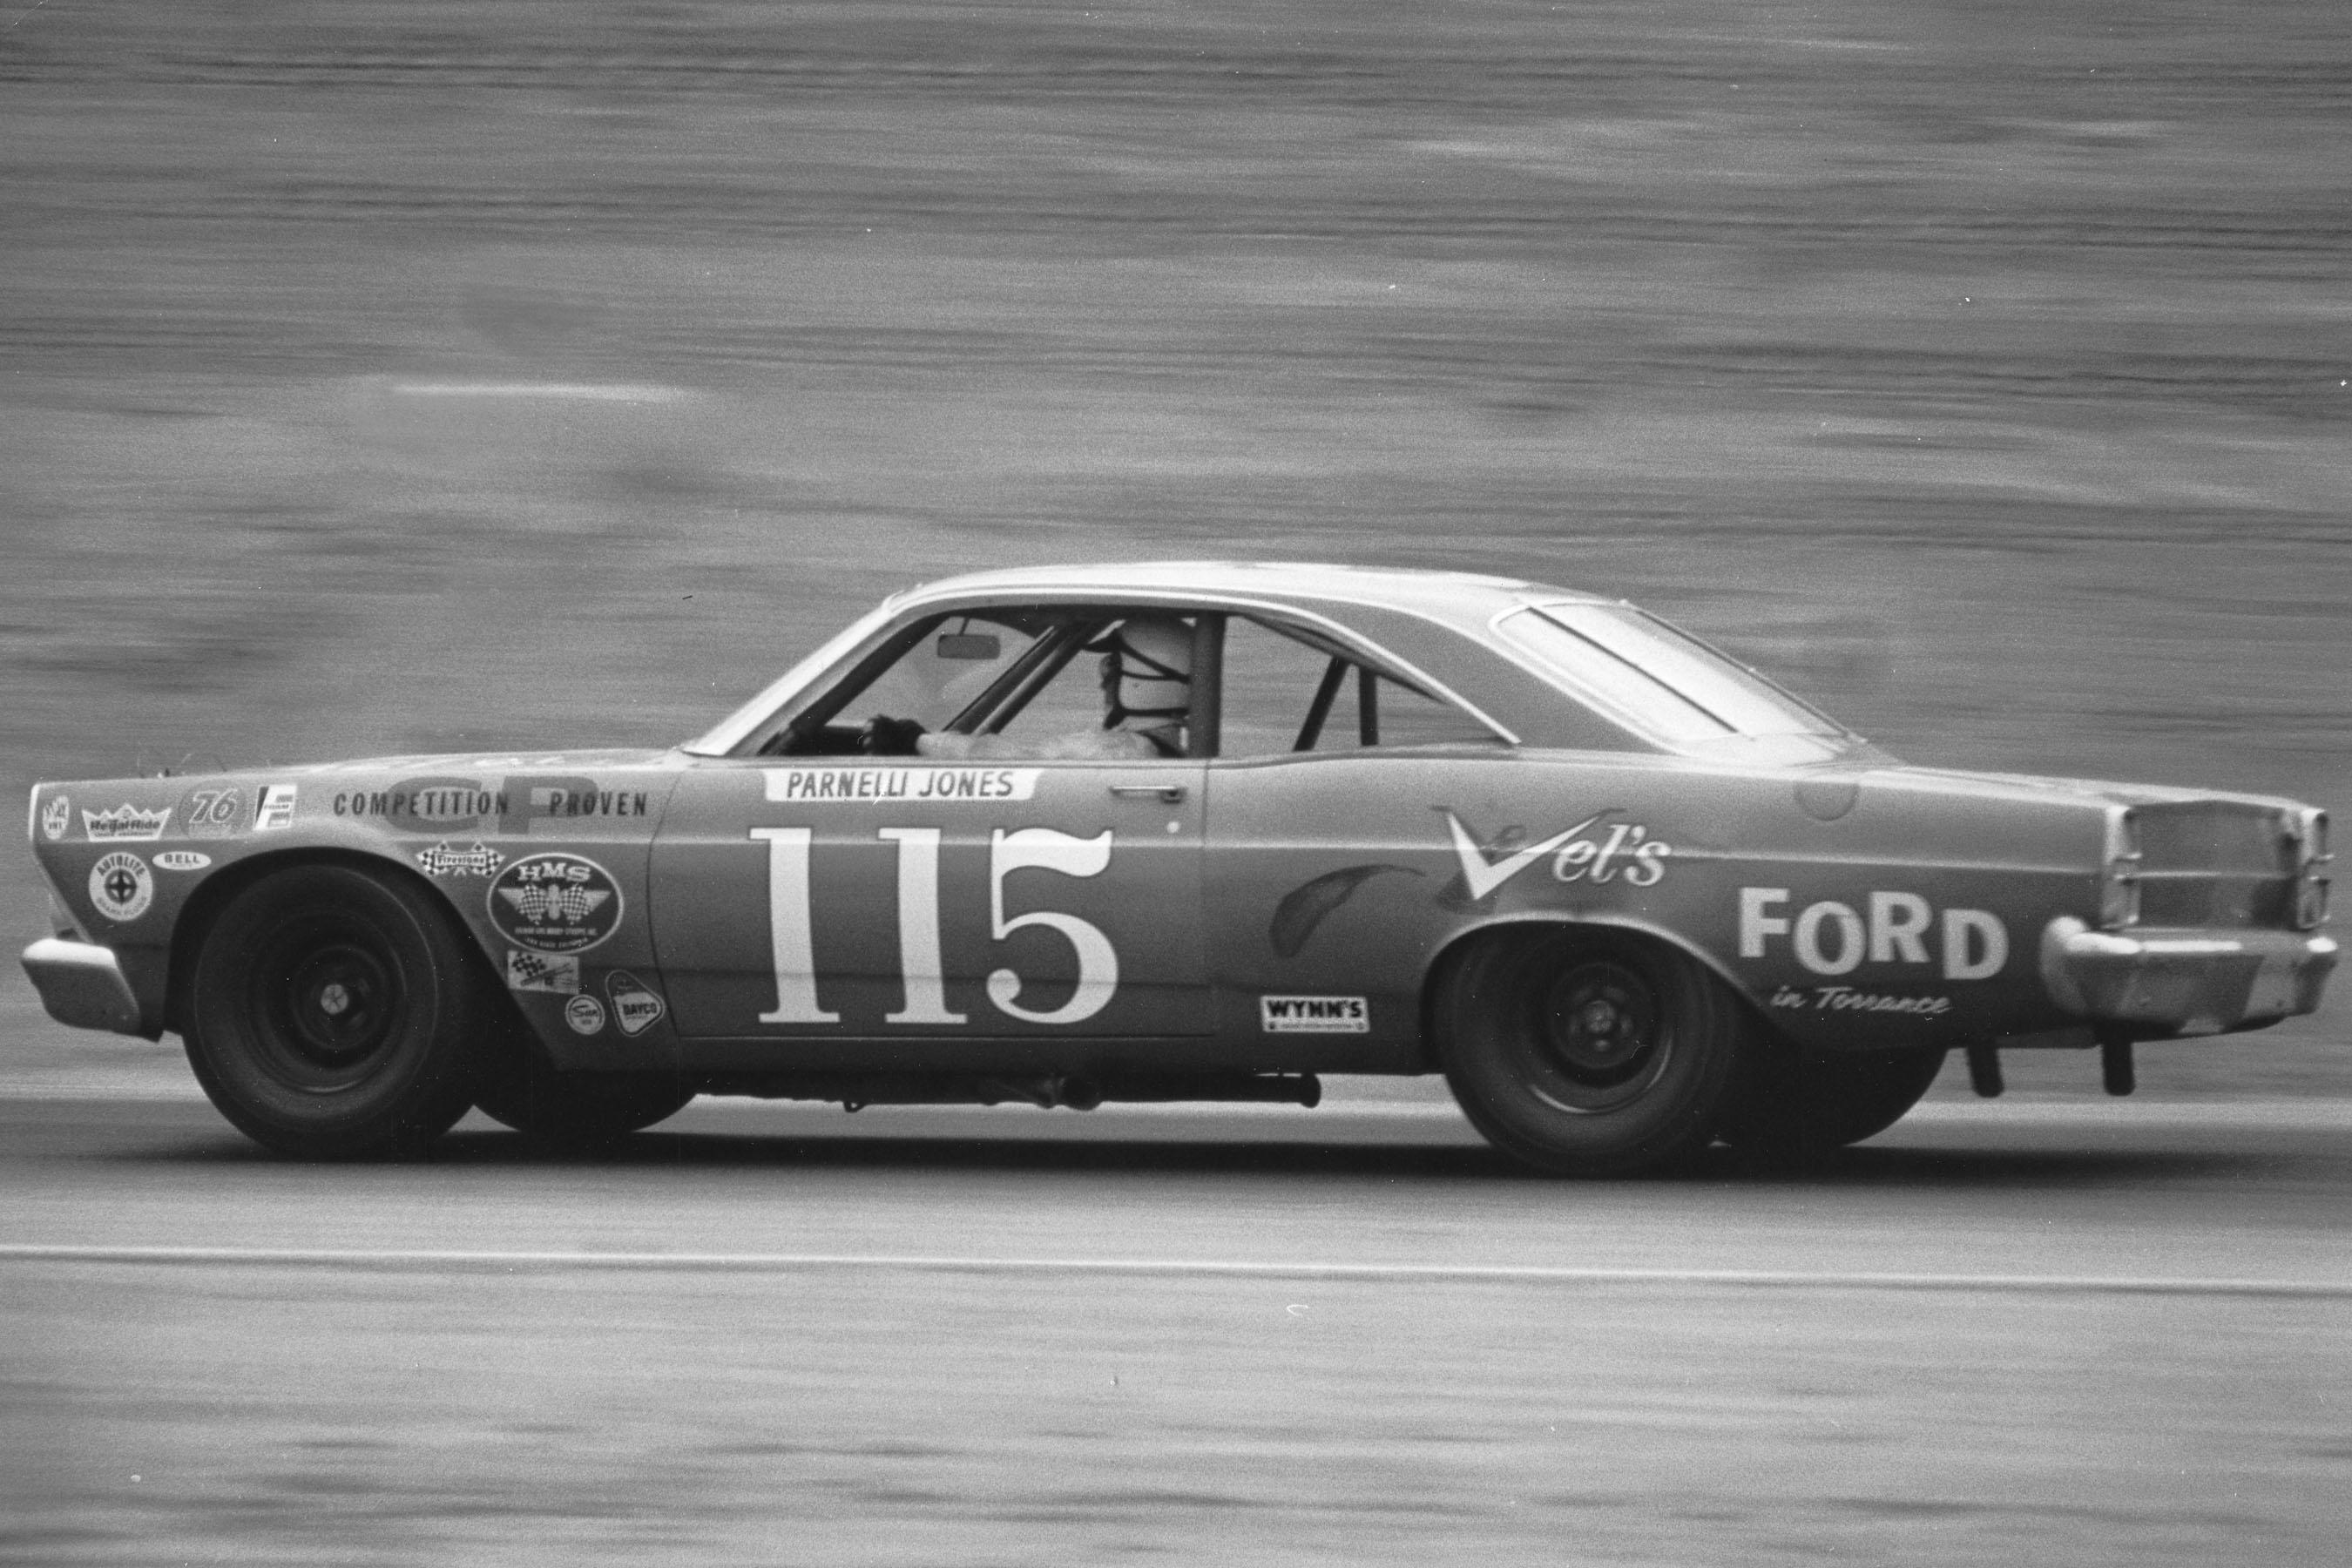 On January 22, 1967, Parnelli Jones won the Motor Trend 500